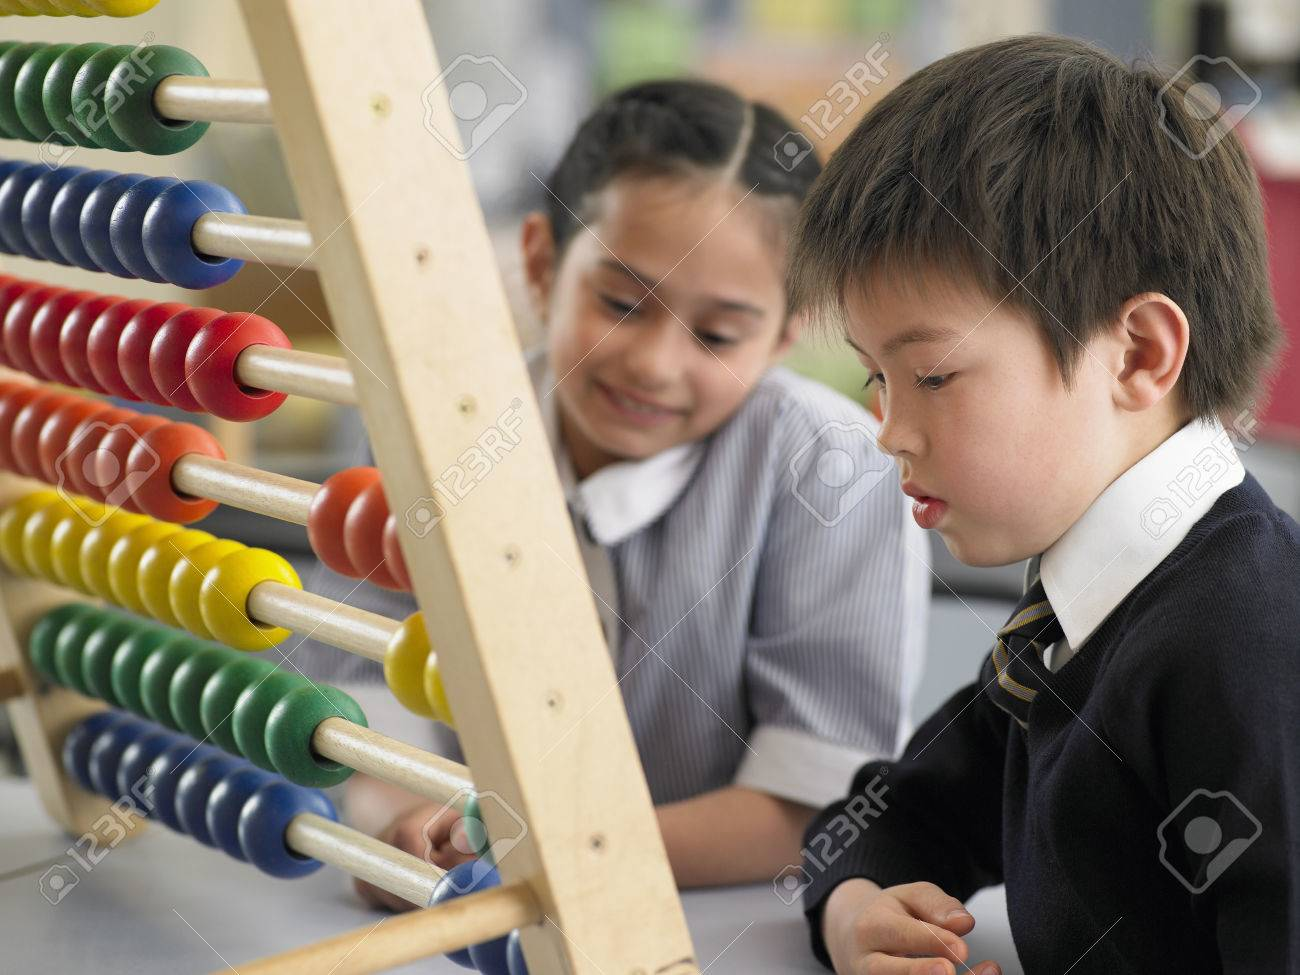 Schoolkids Using an Abacus Stock Photo - 5487624